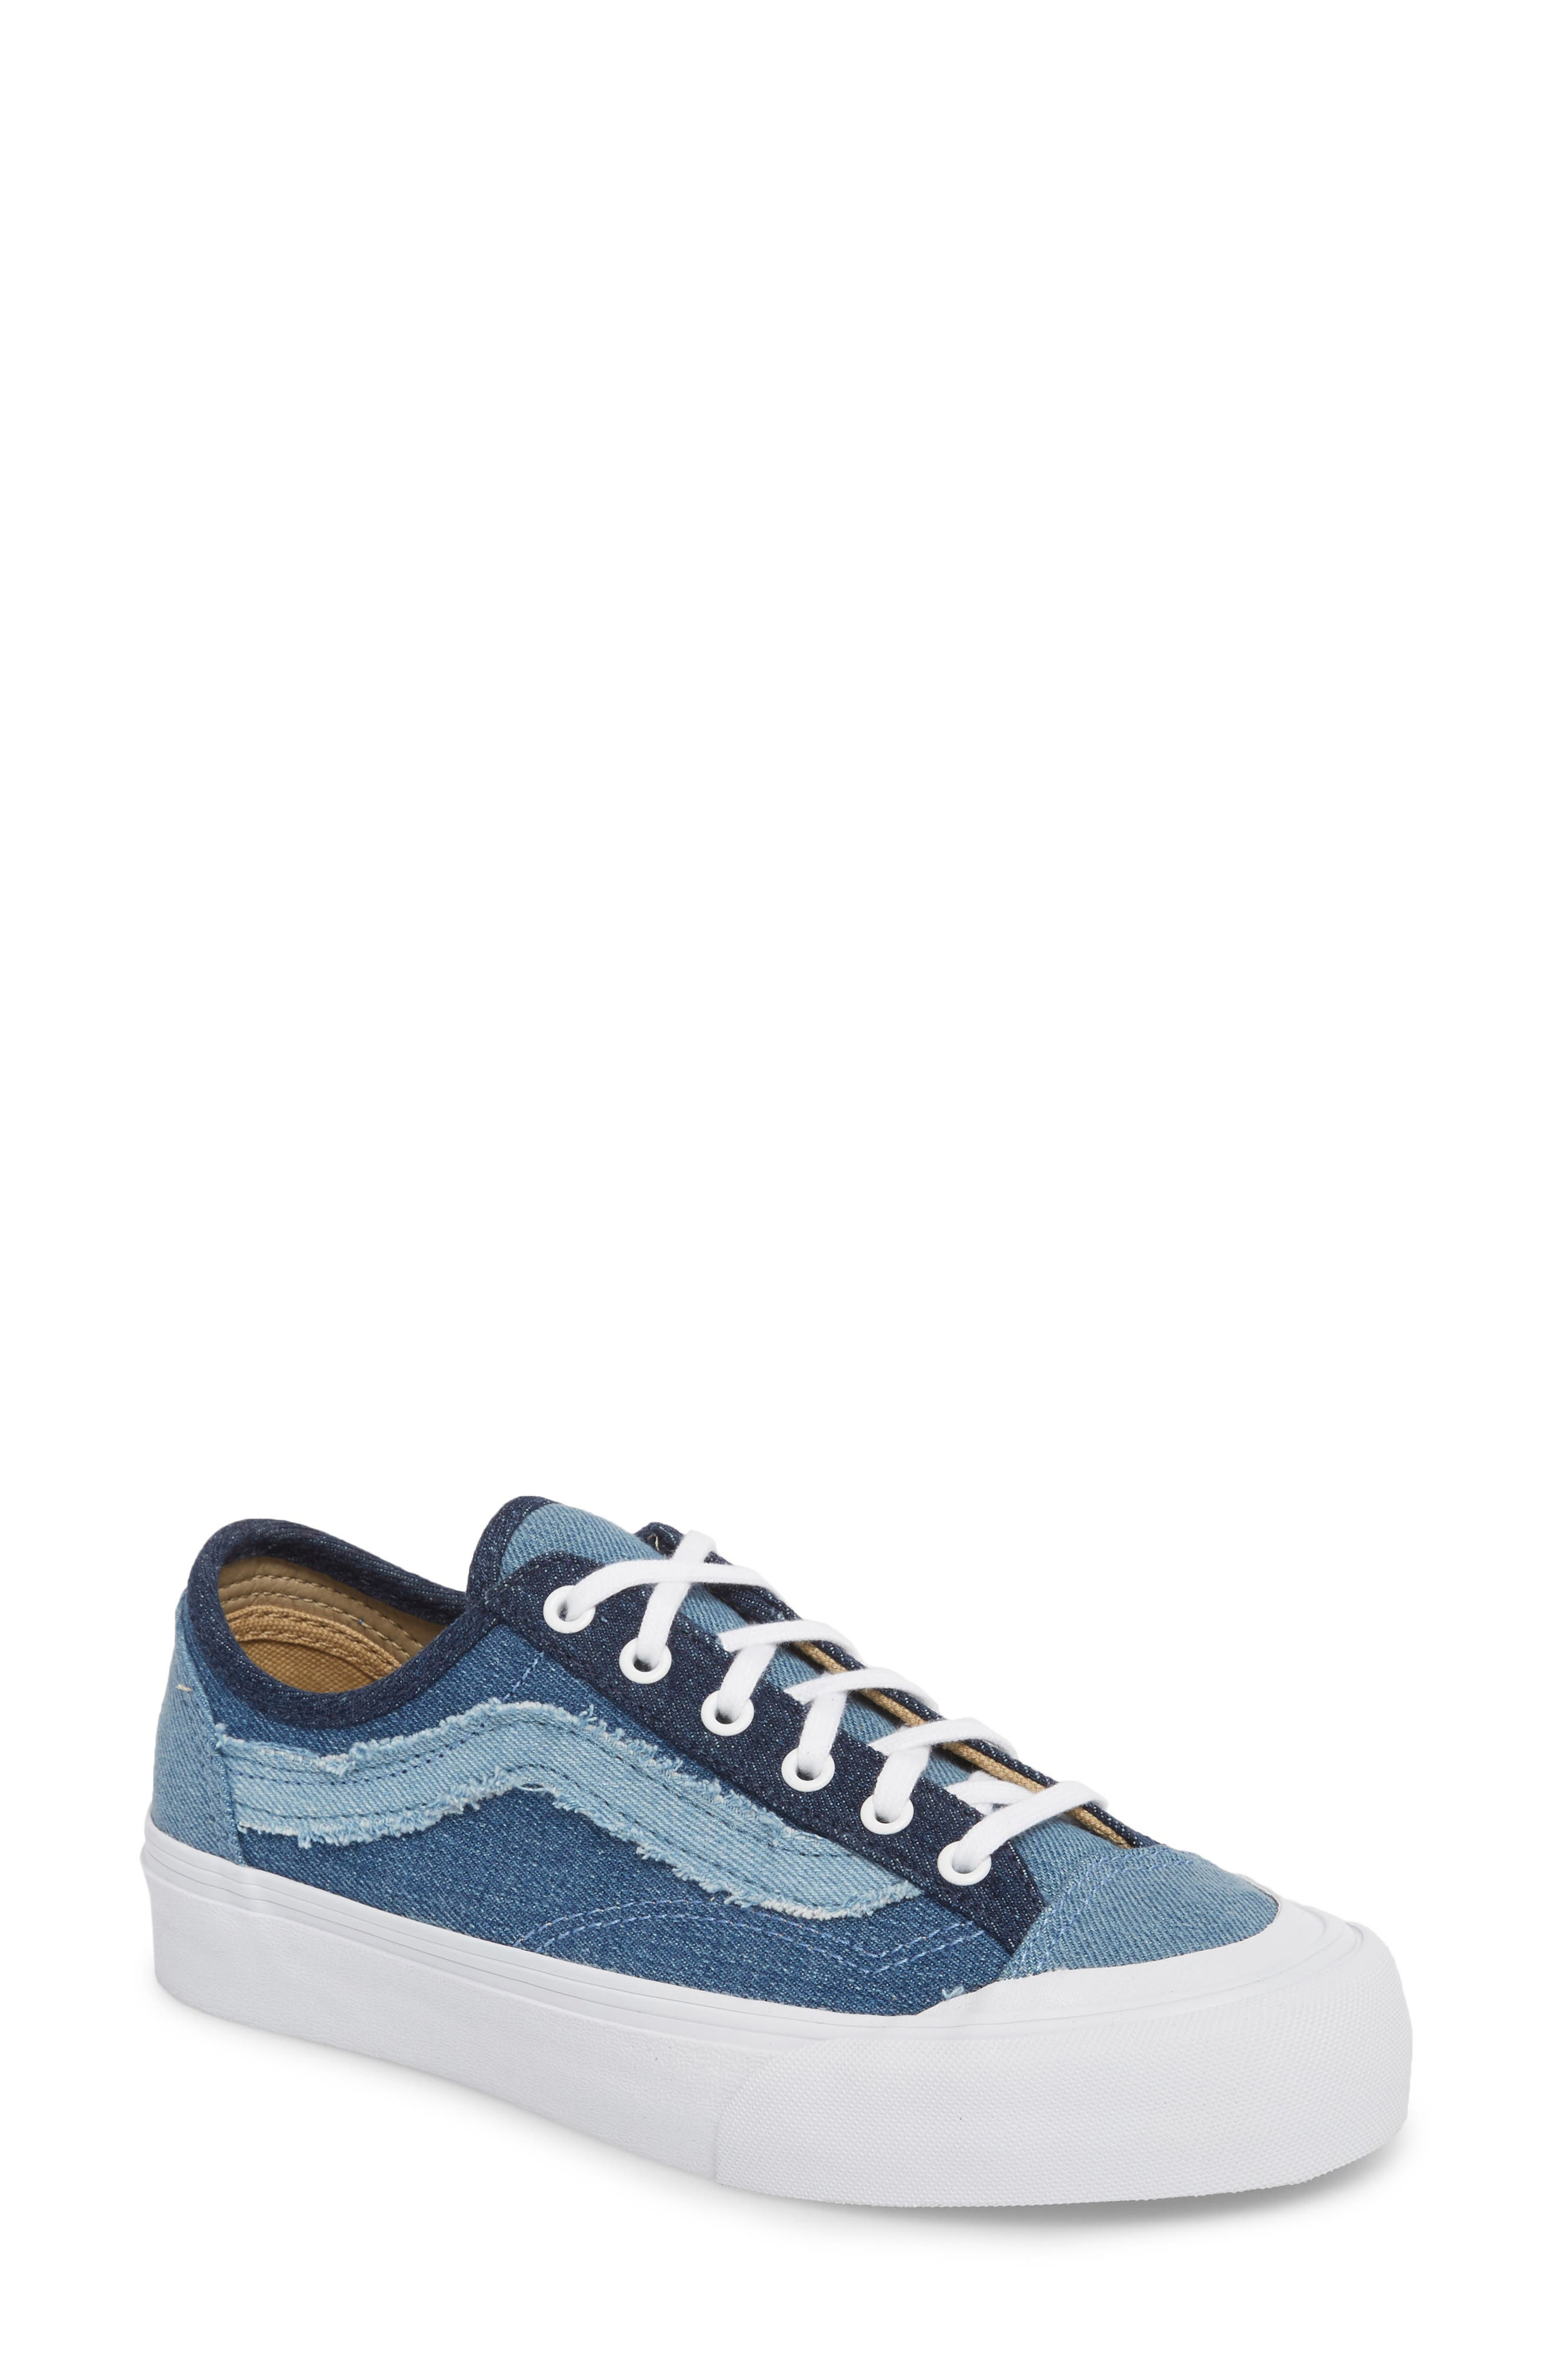 Style 36 Decon Sneaker,                         Main,                         color, Frayed Denim